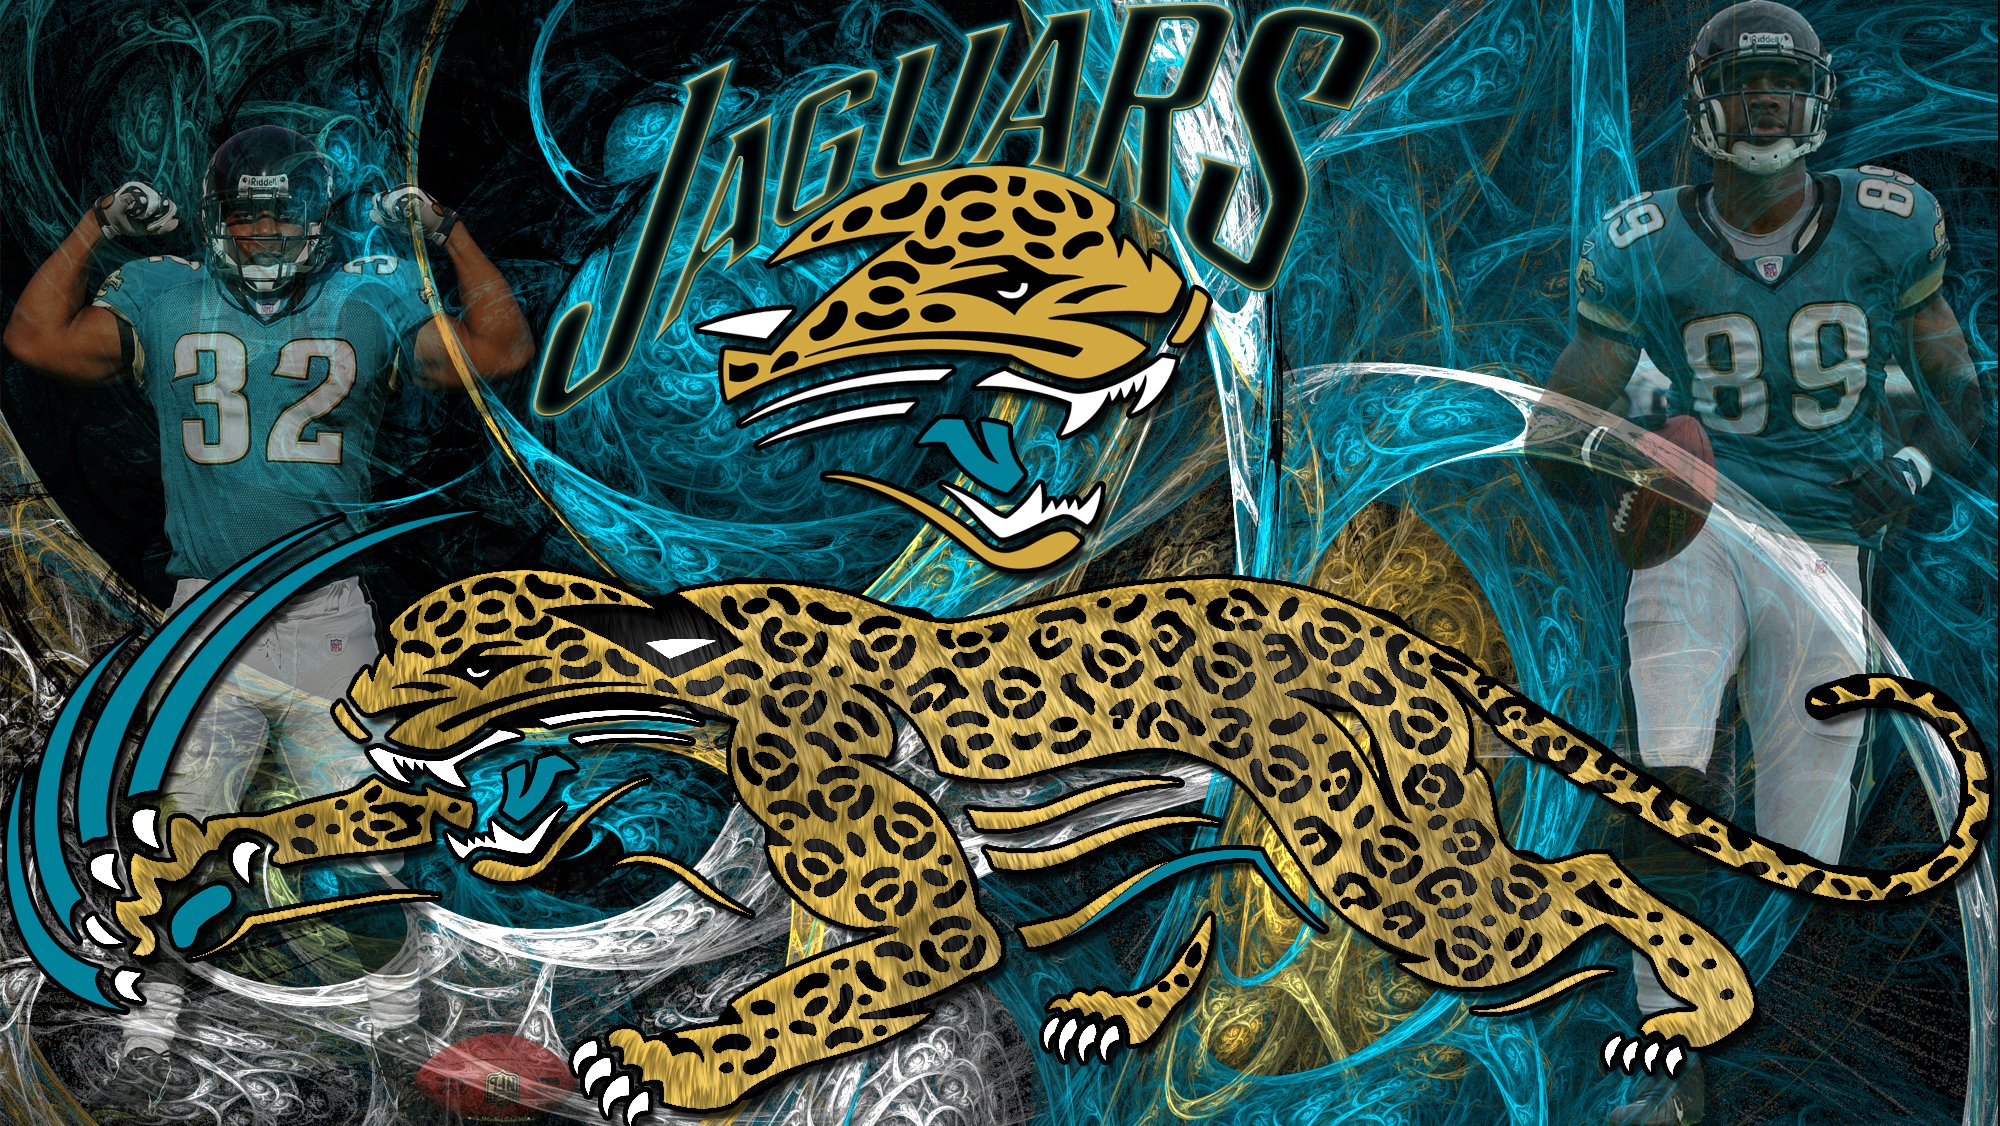 JACKSONVILLE JAGUARS nfl football h wallpaper background 2000x1126